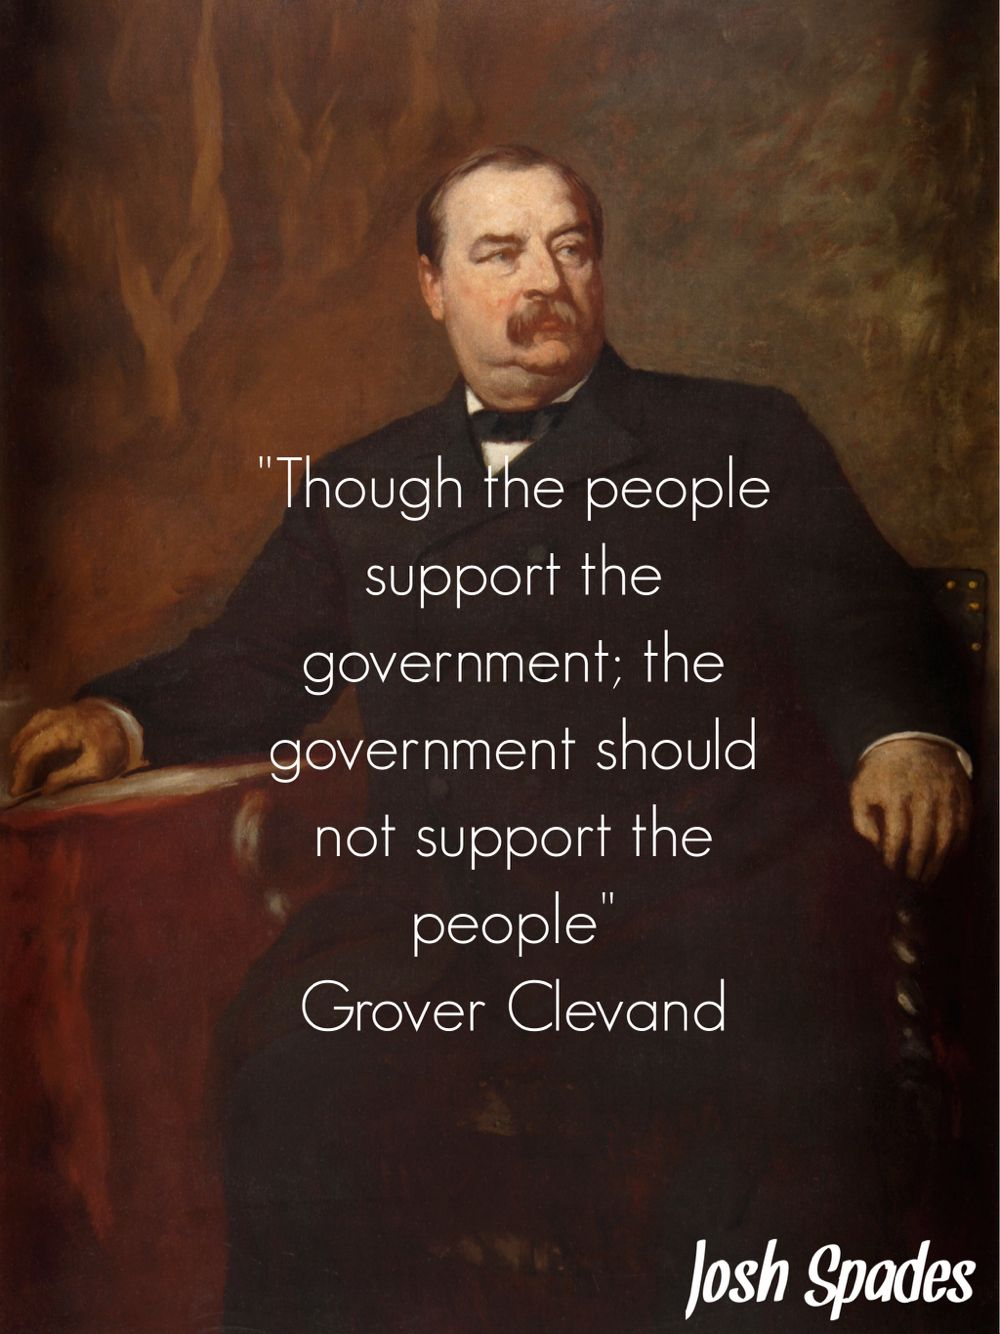 Gerald Ford Quotes Grover Cleveland  President's Quotes  Pinterest